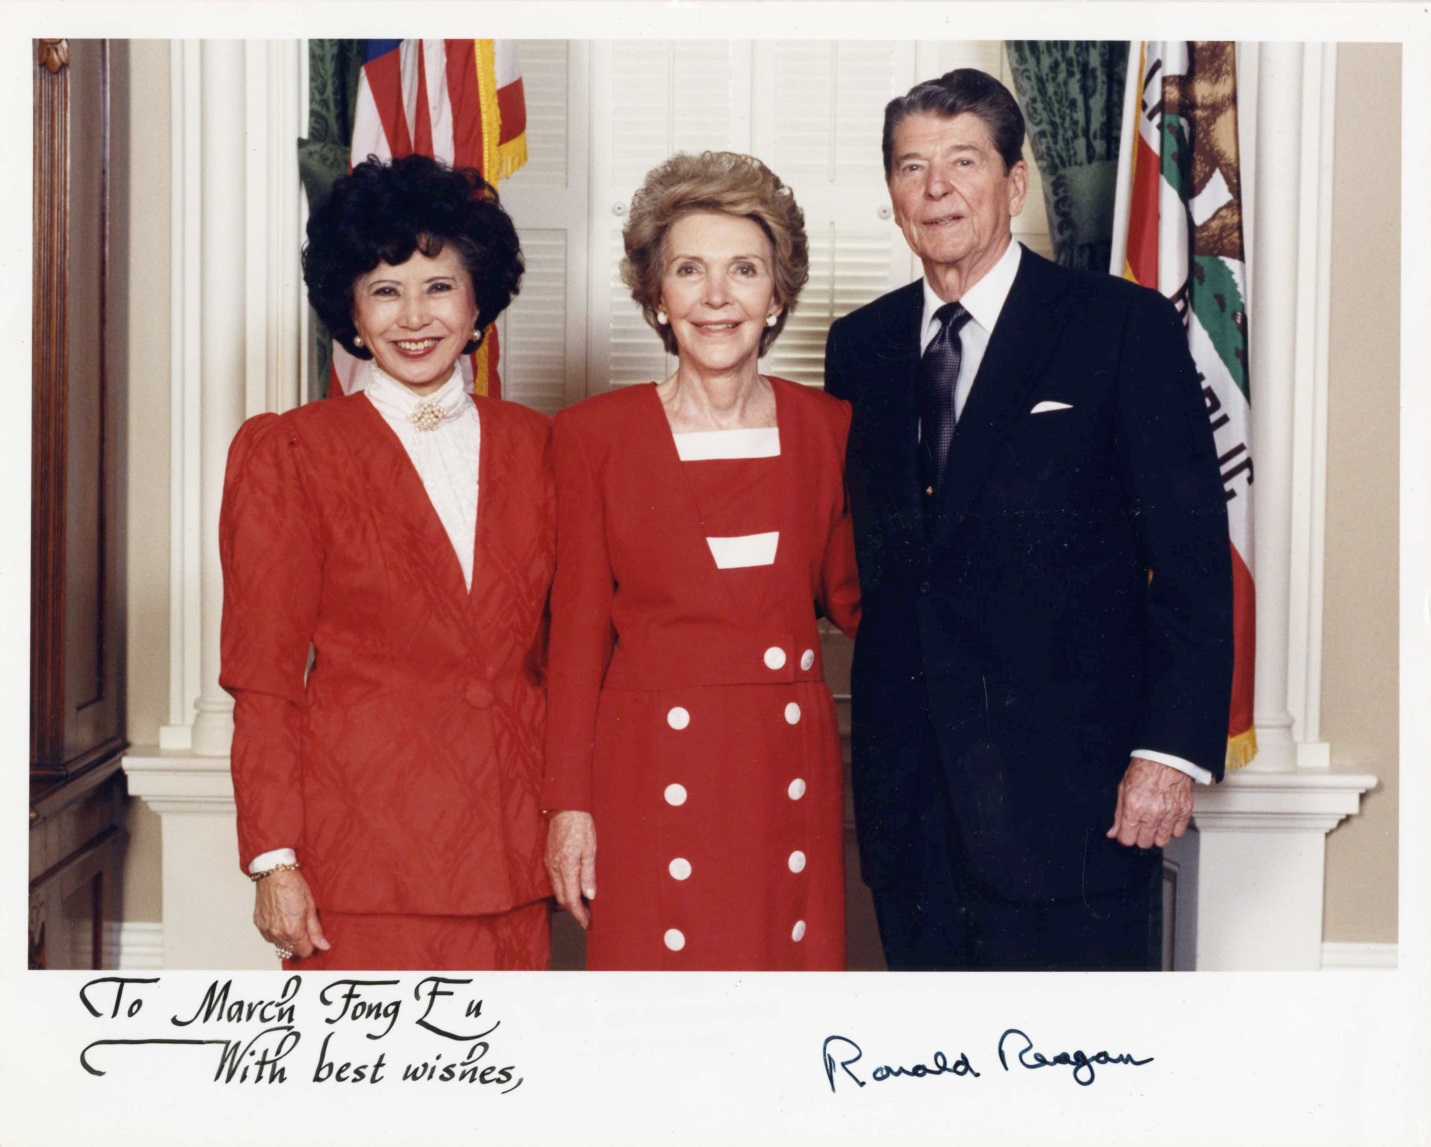 President Ronald Reagan and Nancy Reagan with former Secretary of State March Fong Eu